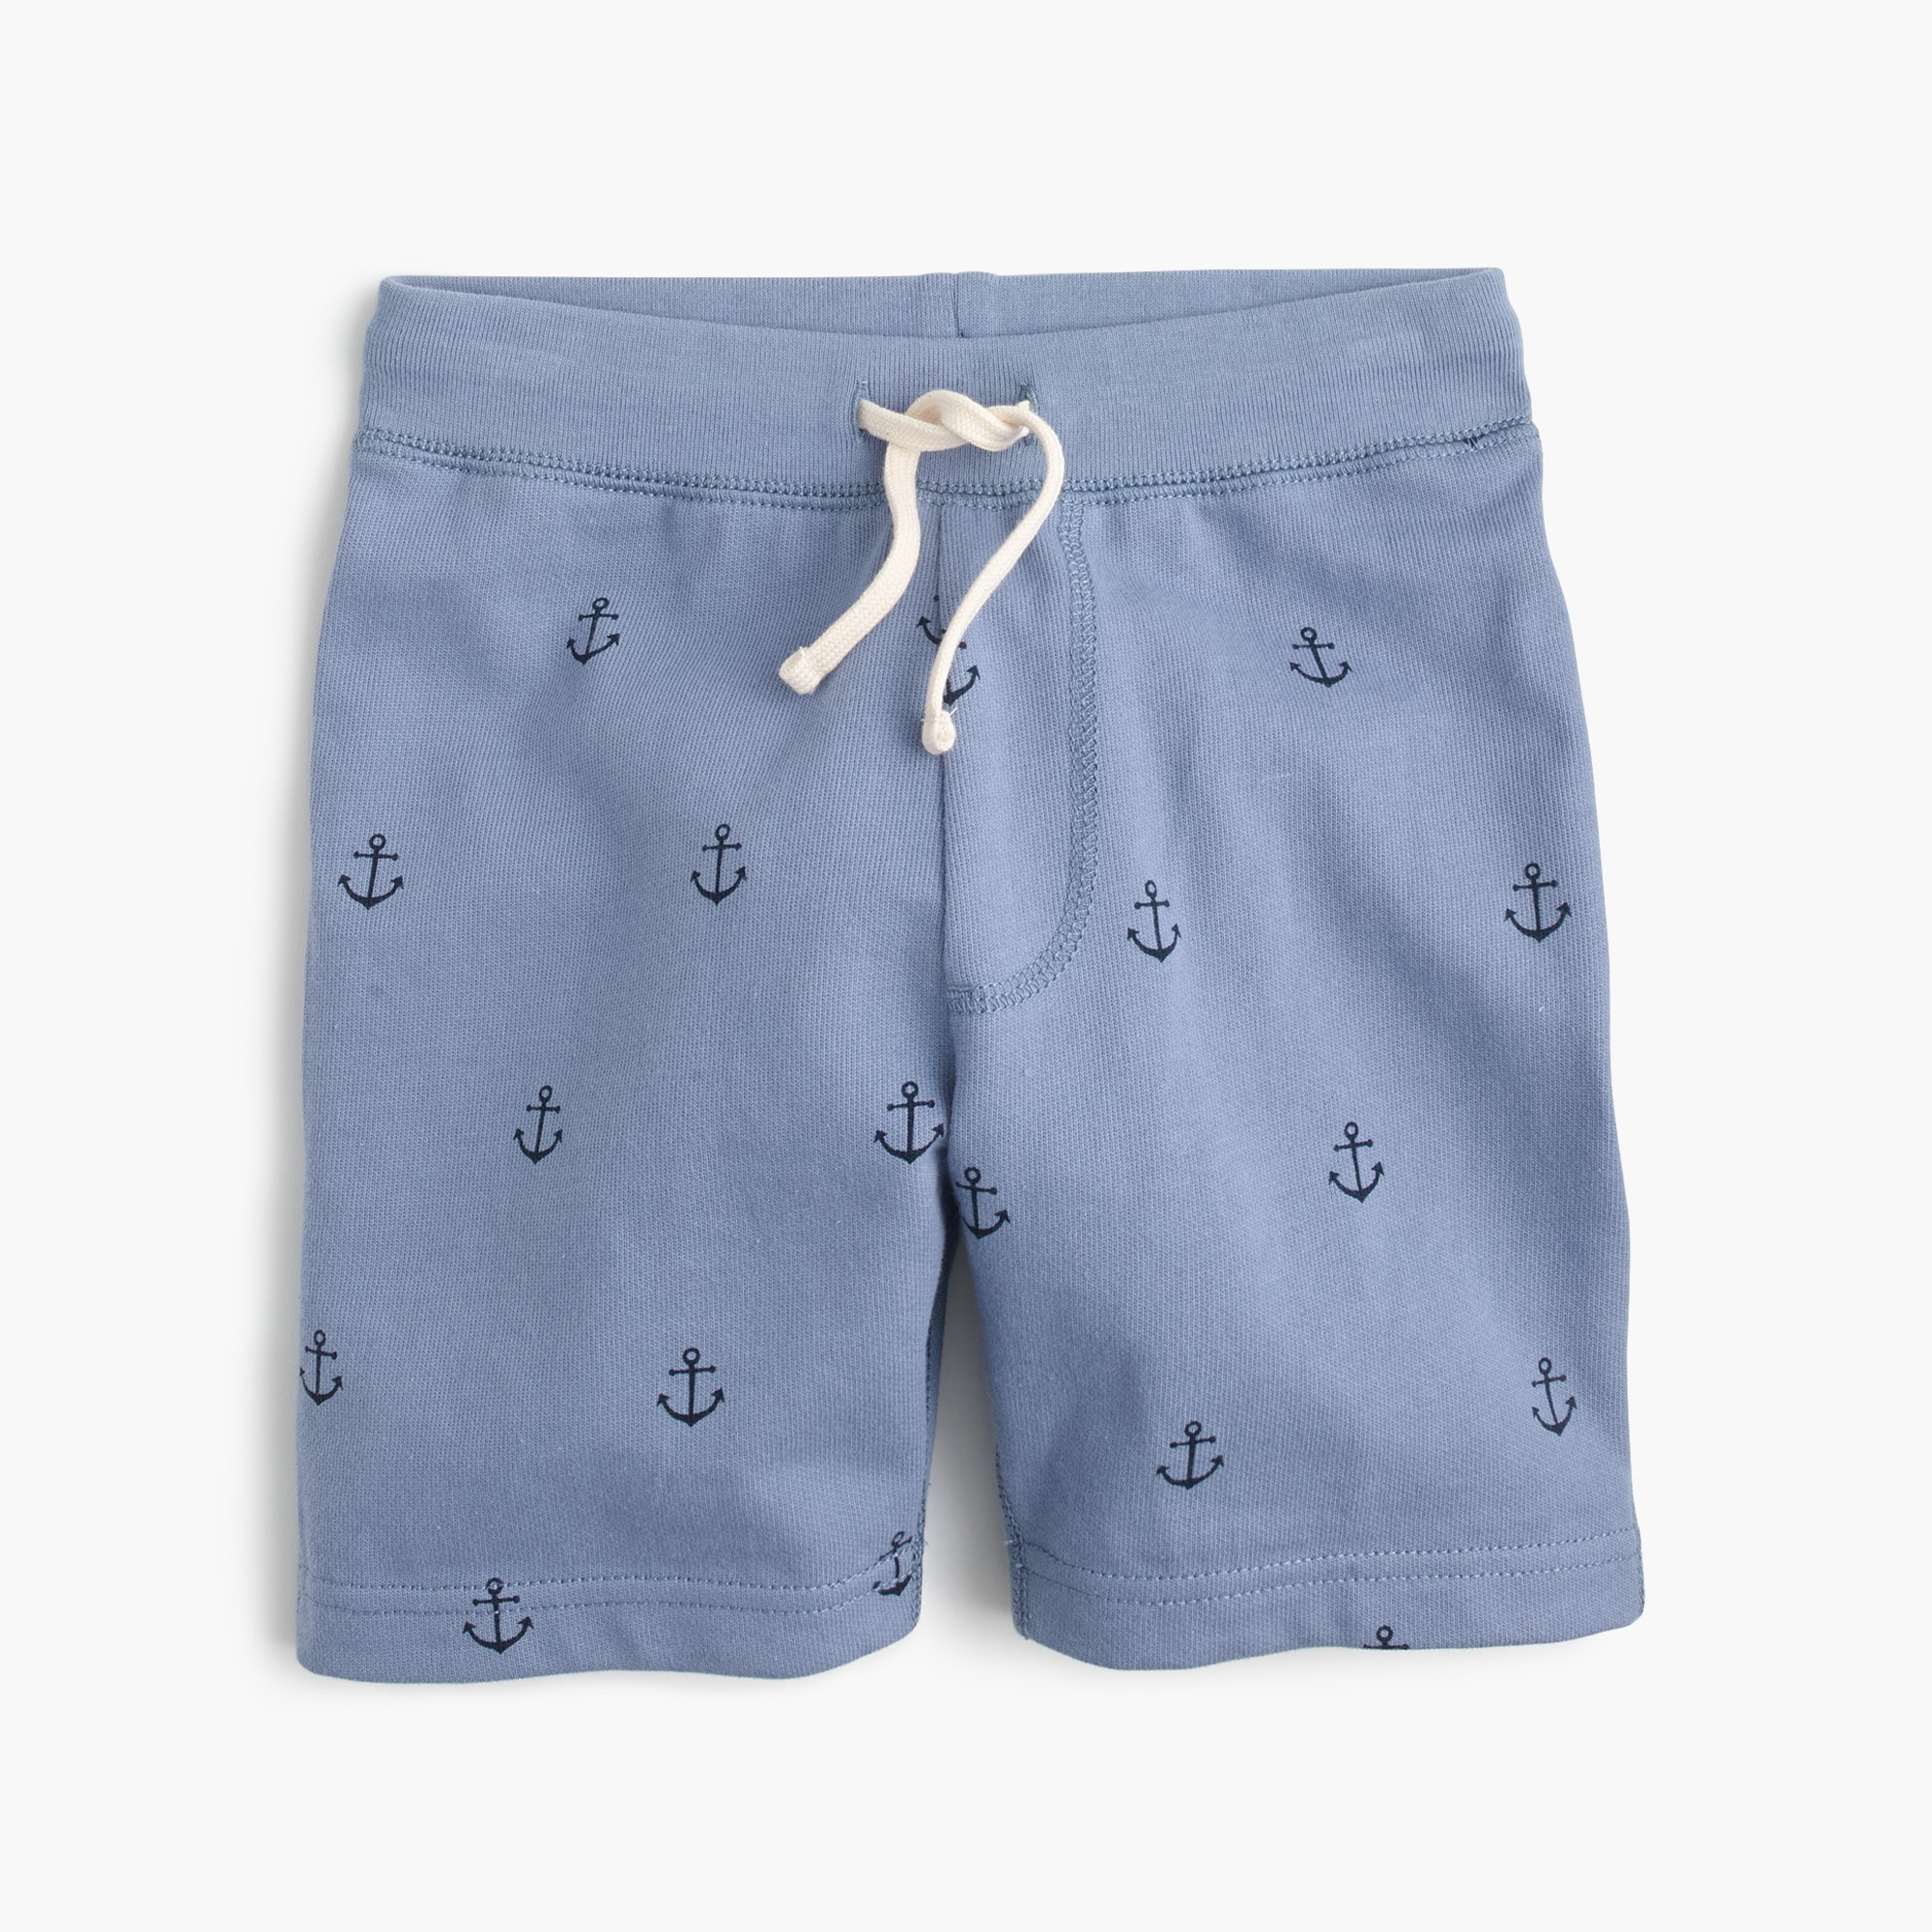 Boys' critter sweatshort in anchors boy new arrivals c